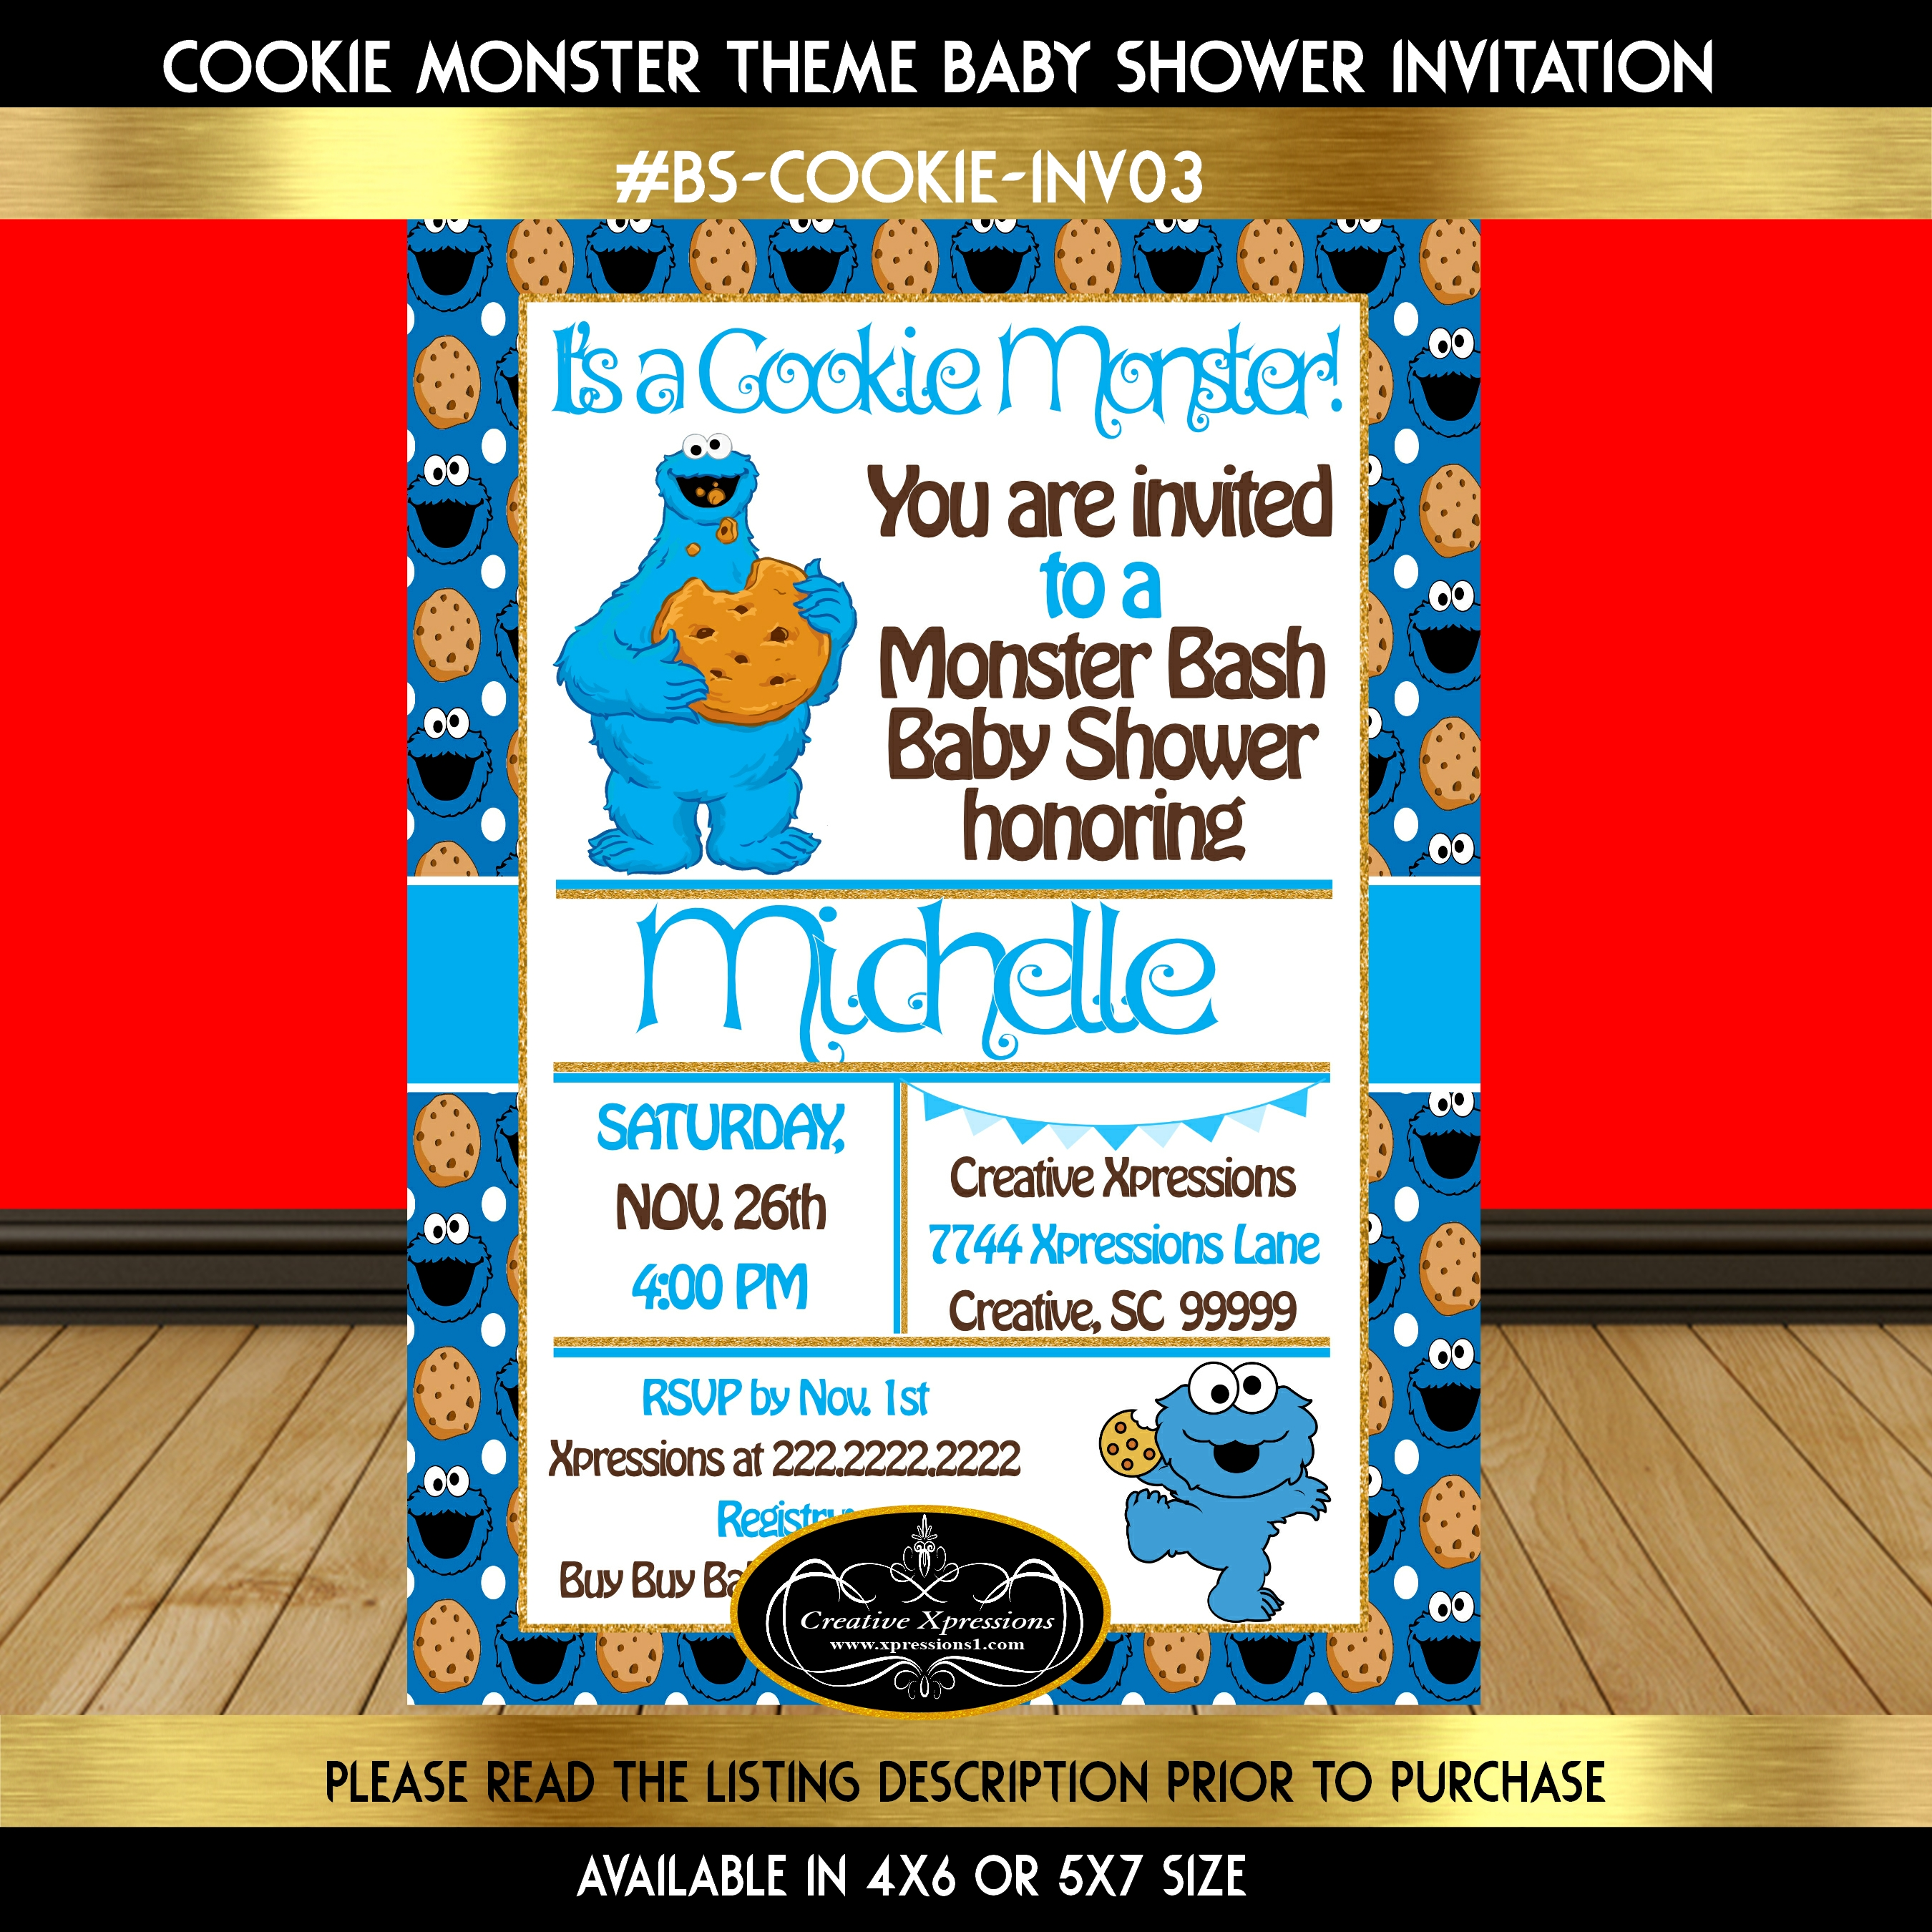 Cookie Monster Baby Shower Invitations | Shilohmidwifery.com